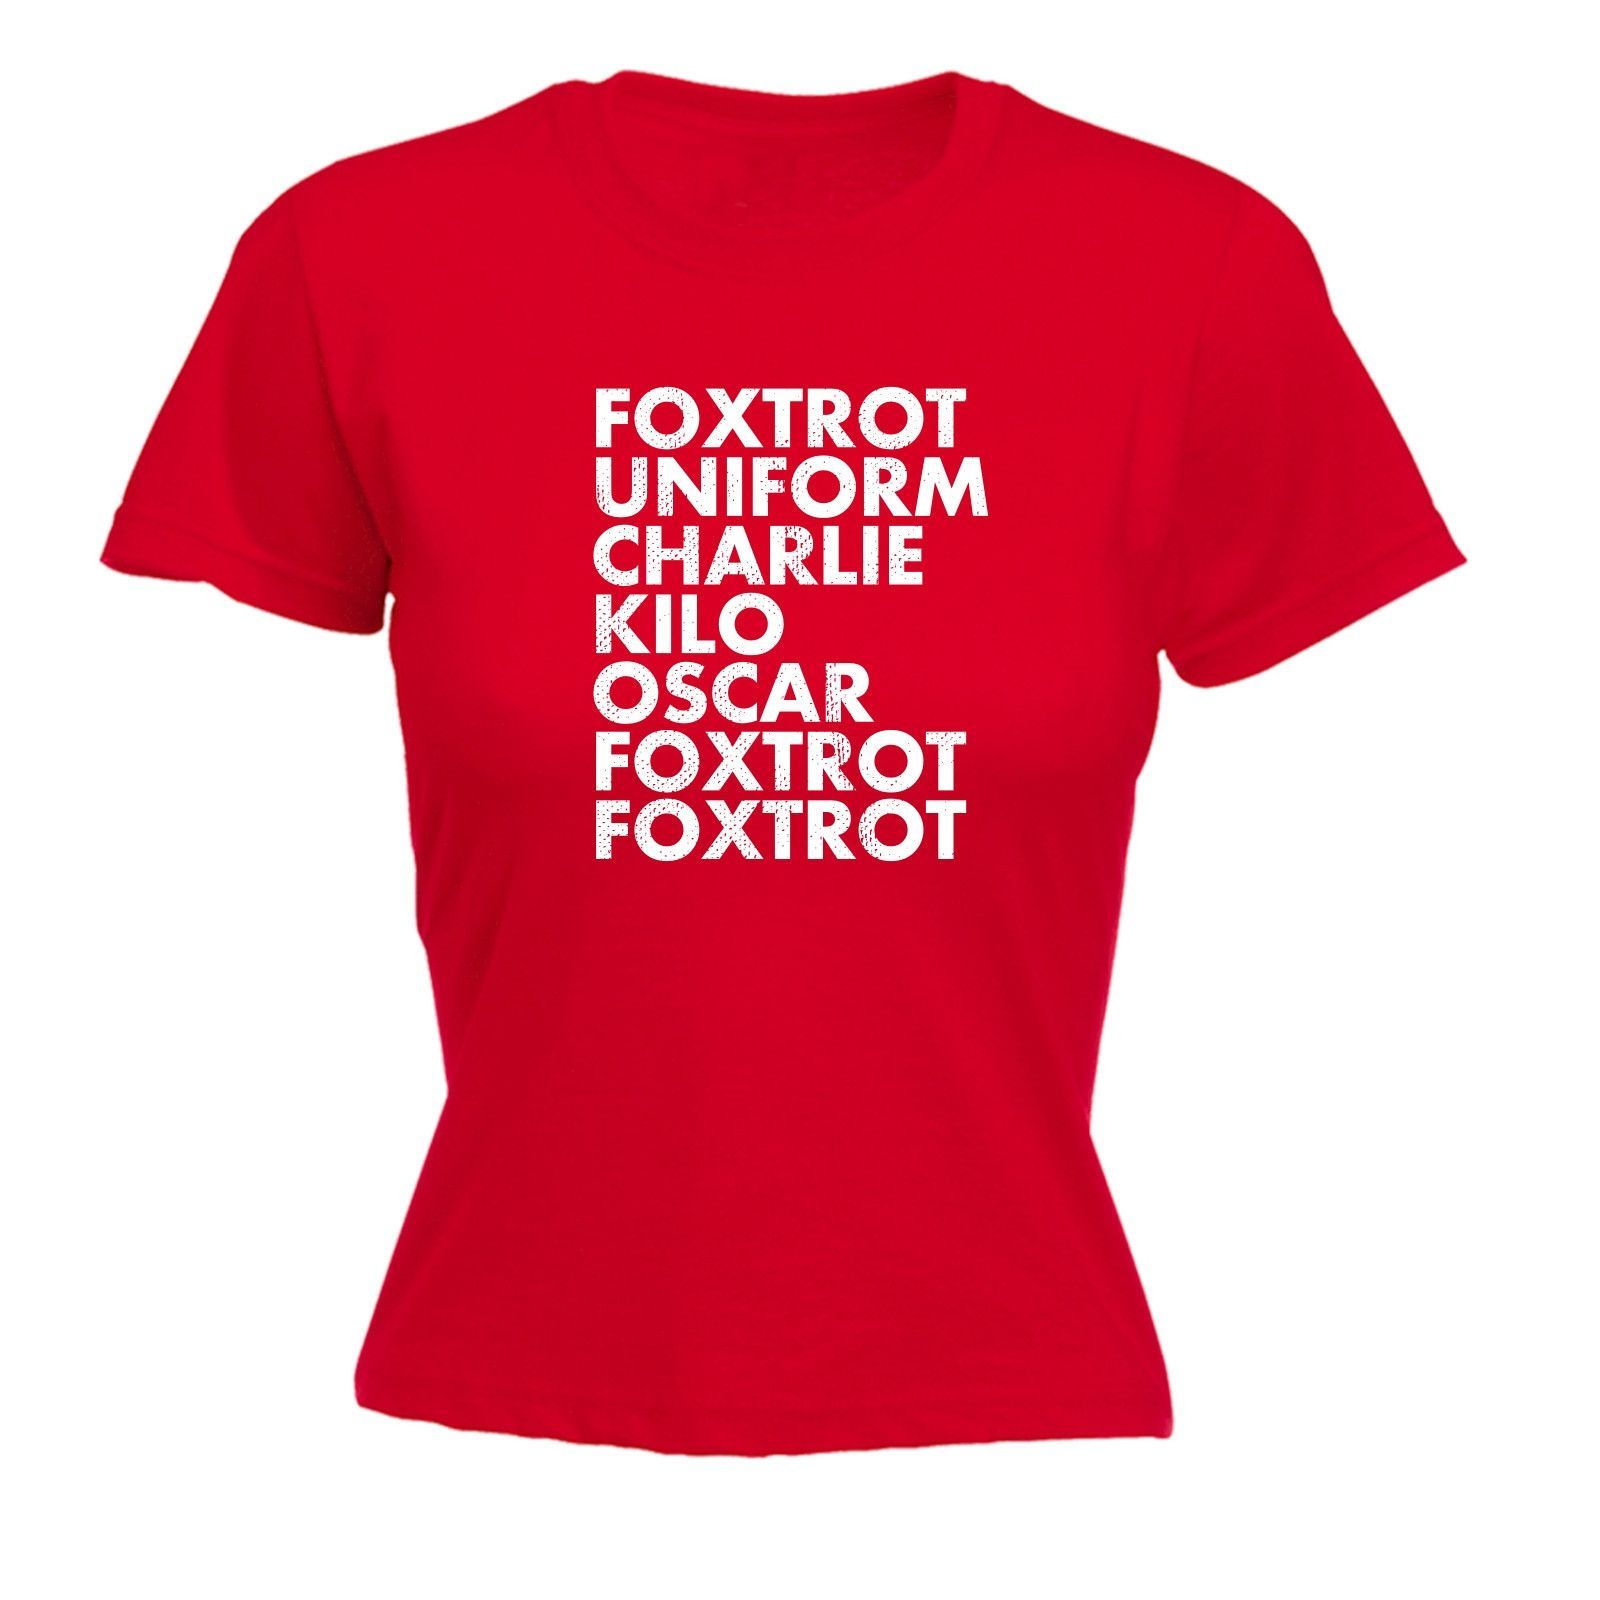 Buy 123t Women's Foxtrot Uniform Charlie Kilo Oscar